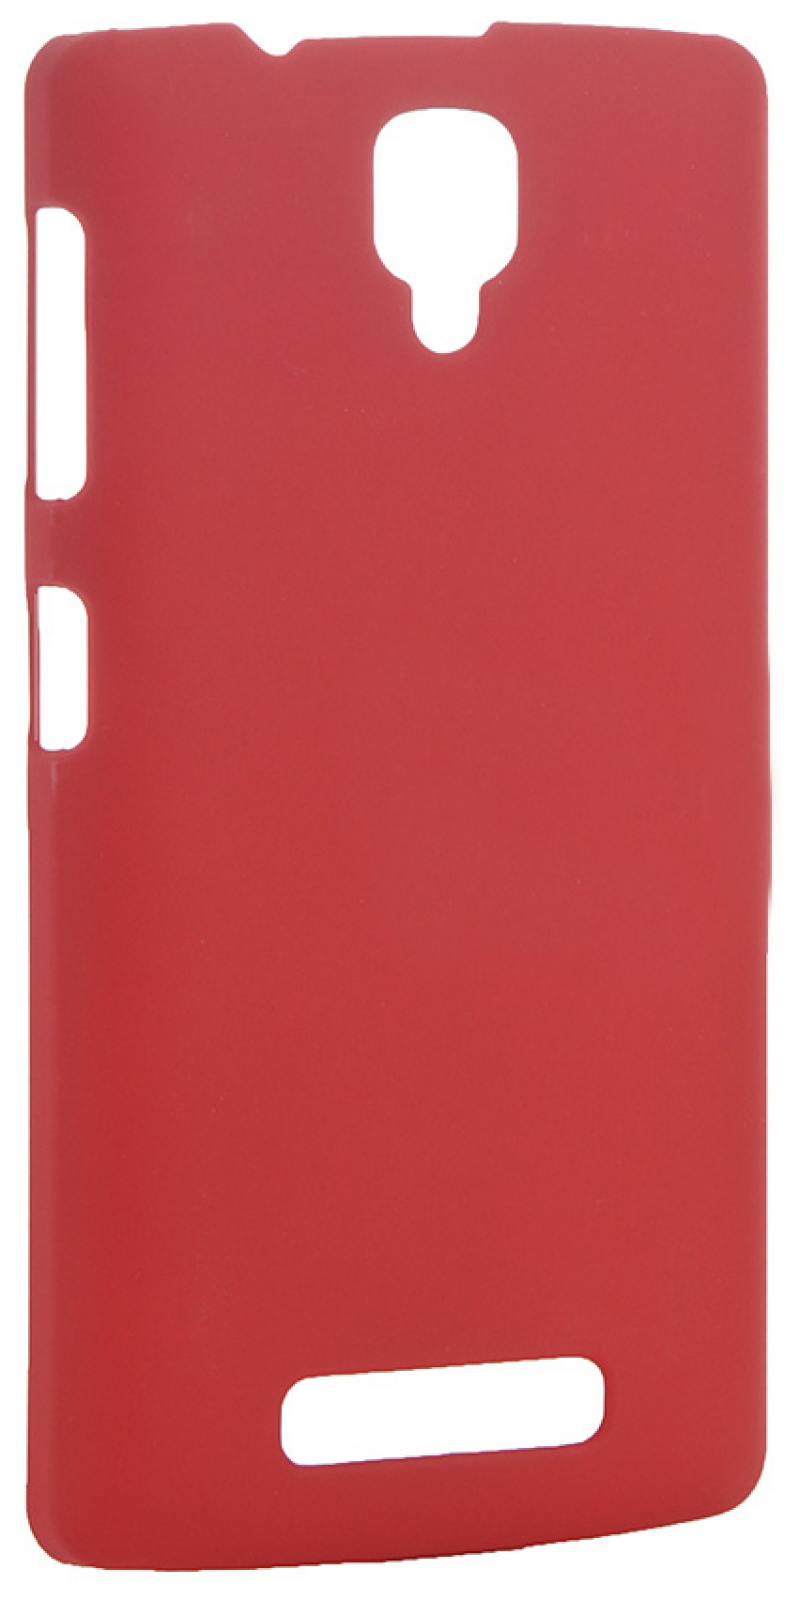 Чехол-накладка для Lenovo A1000 Pulsar CLIPCASE PC Soft-Touch Red клип-кейс, пластик soft-touch new 7 inch case touch screen for supra m741 m742 tablet touch panel digitizer glass sensor replacement free shipping